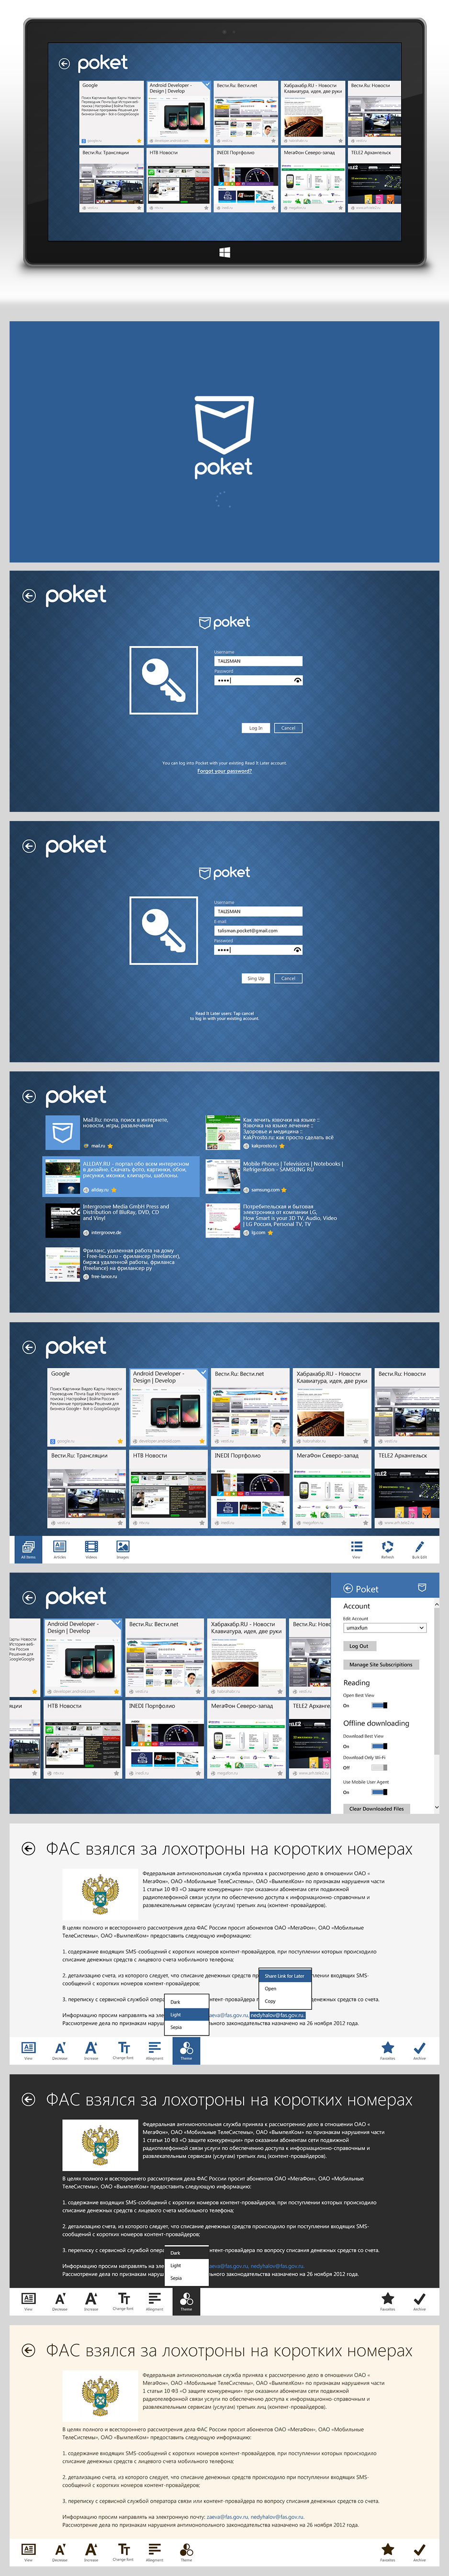 Poket for Windows 8